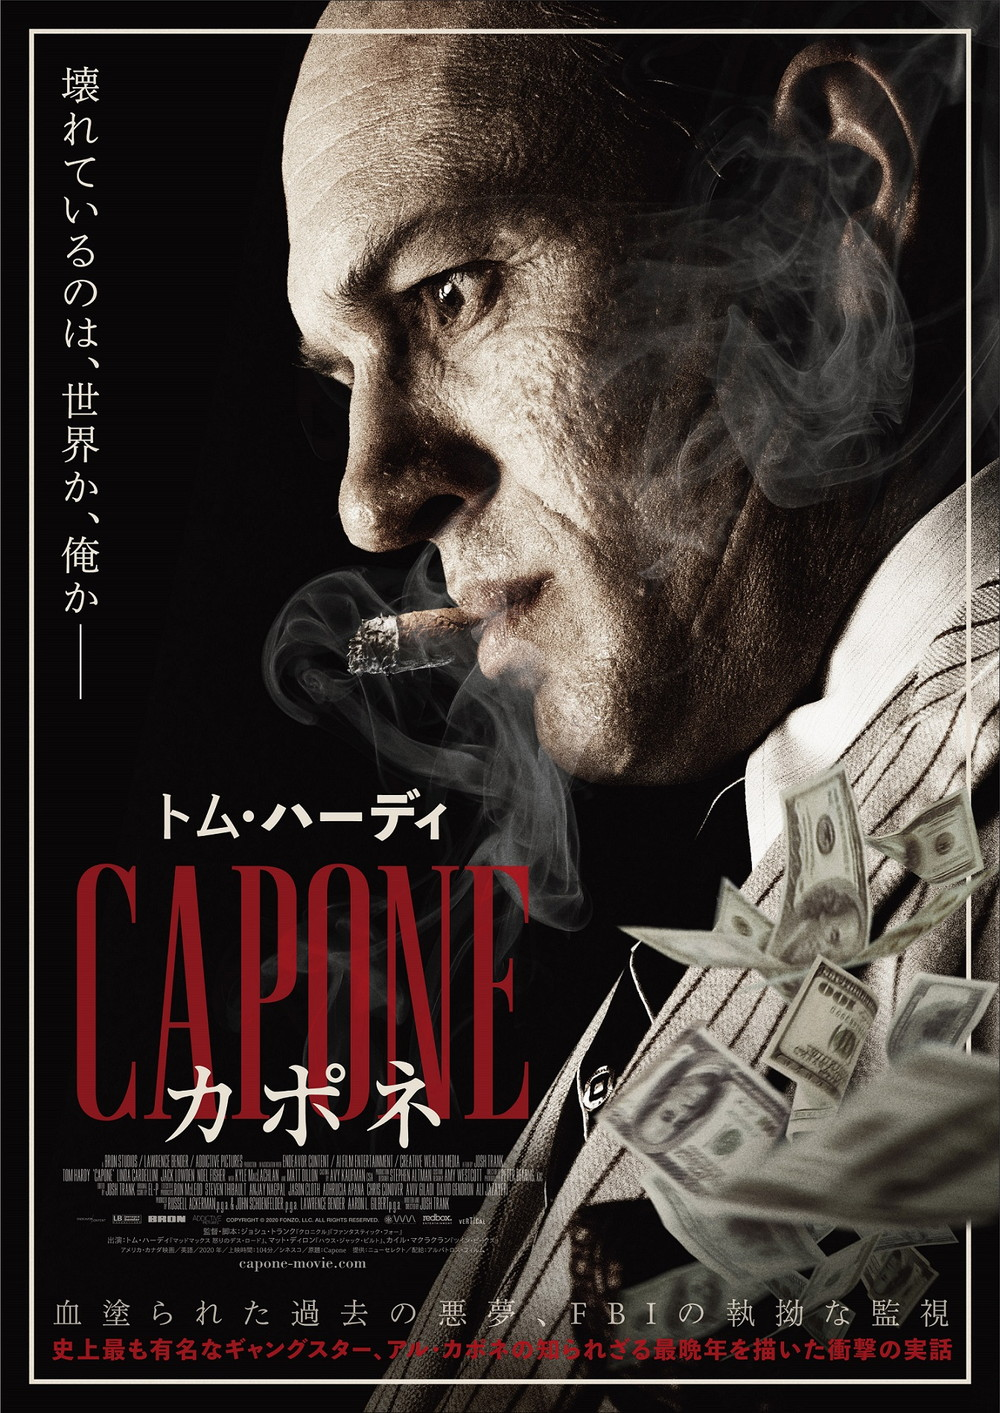 Capone_カポネ‗poster